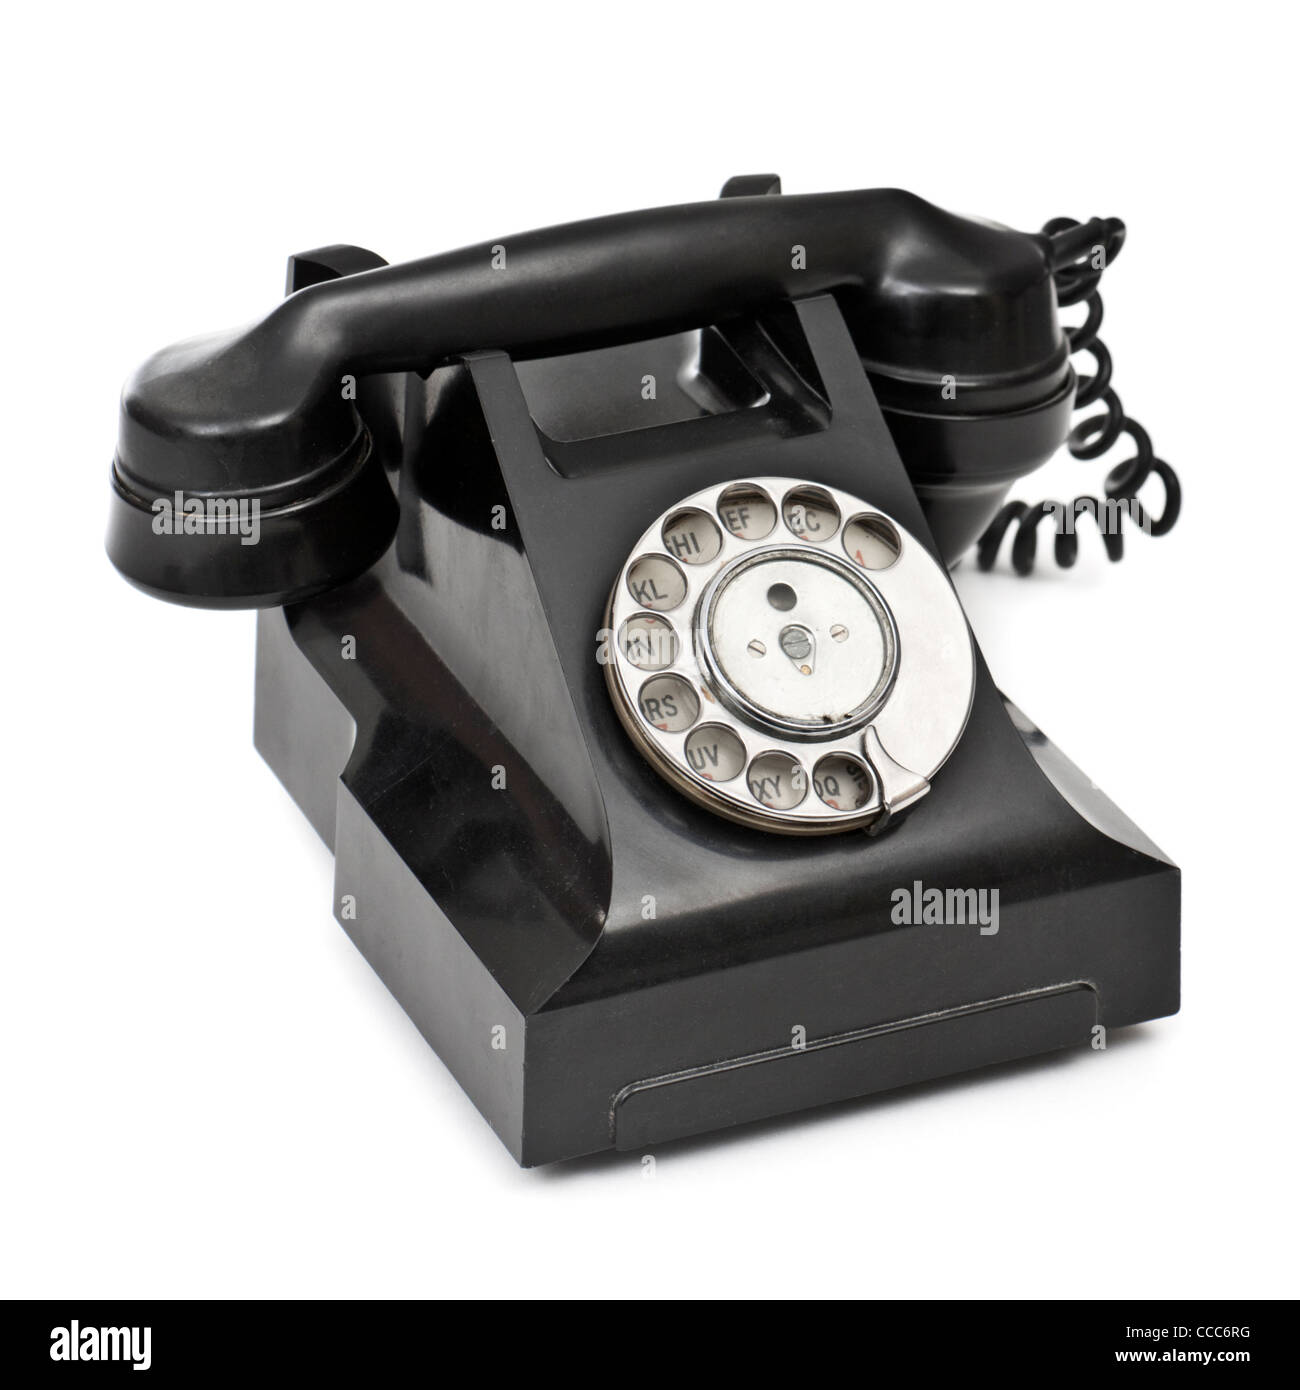 1930's British GPO rotary dial bakelite home telephone (model 332L, FWR 65/2) - Stock Image